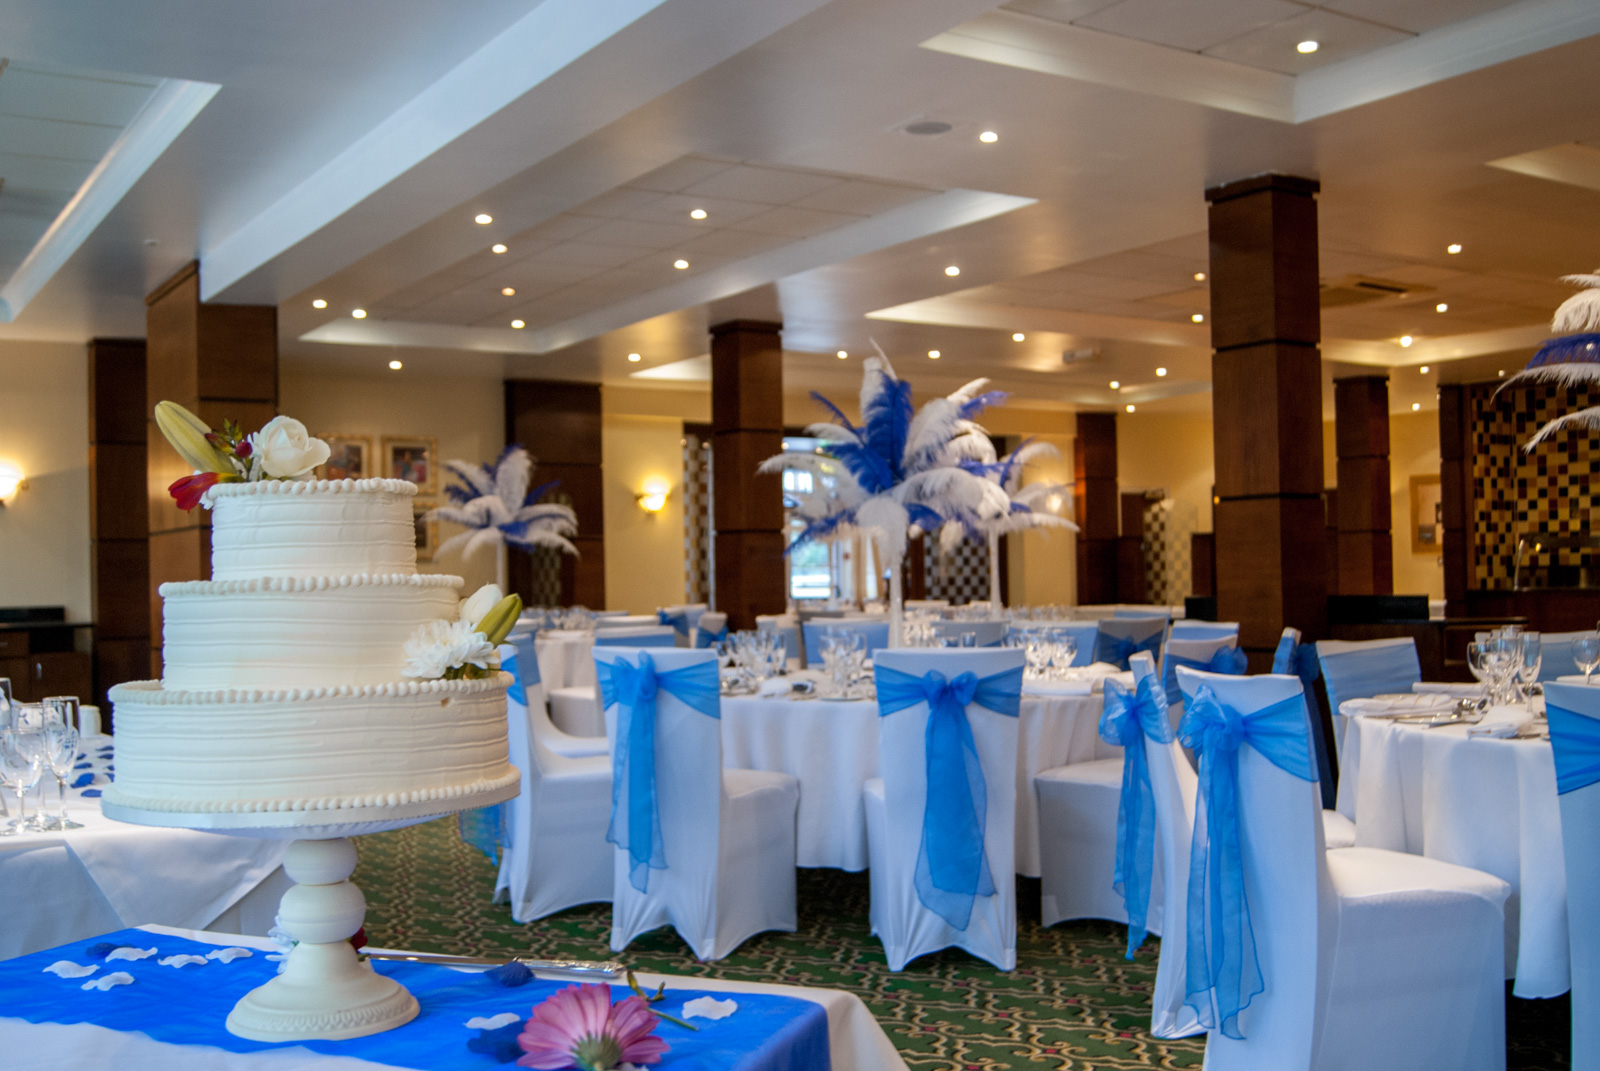 Wedding at the hotel royale Bournemouth